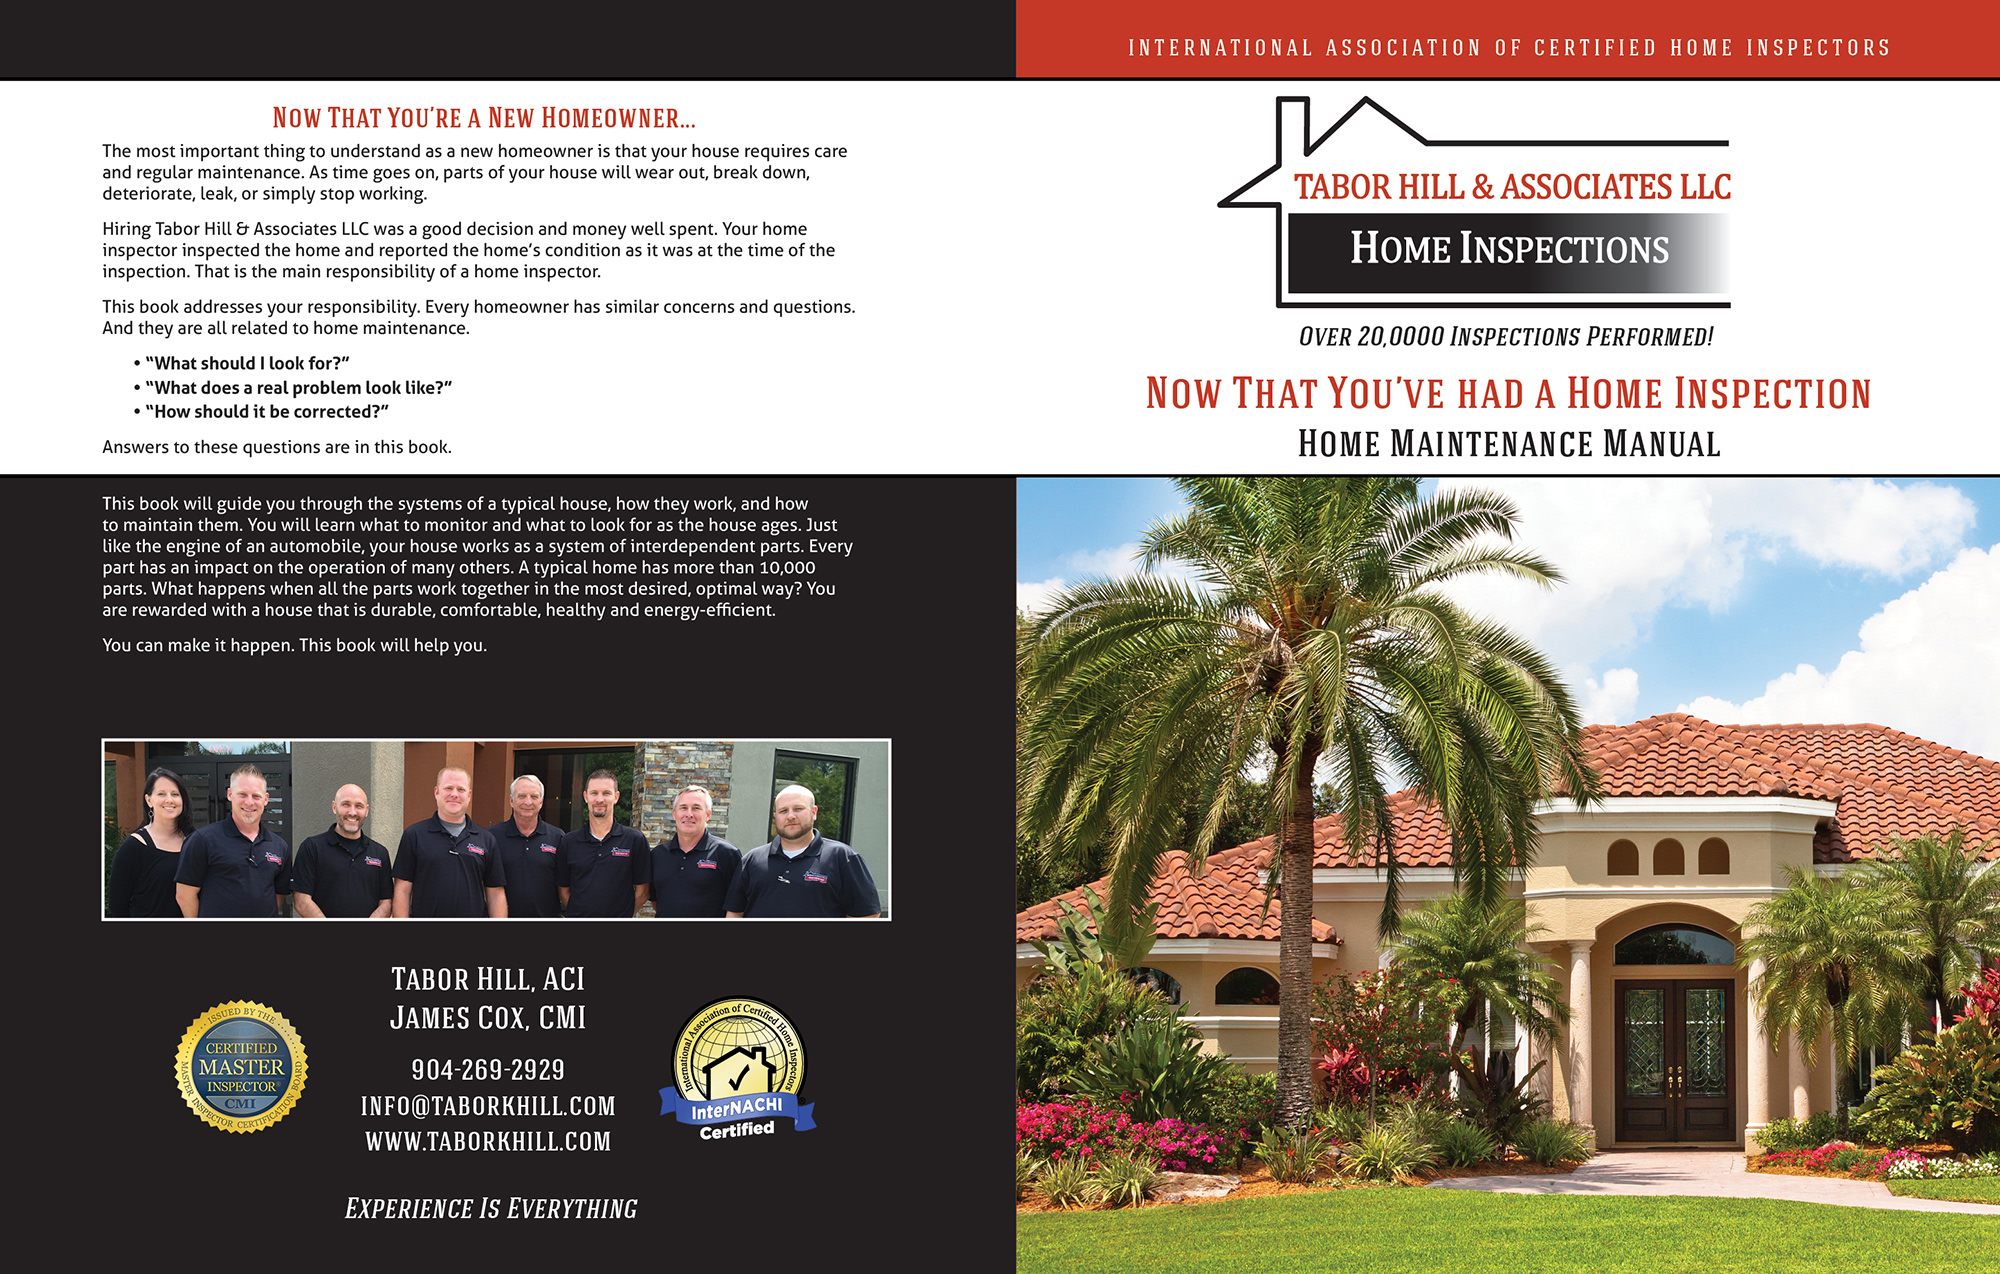 Custom Home Maintenance Book for Tabor Hill Home Inspections.